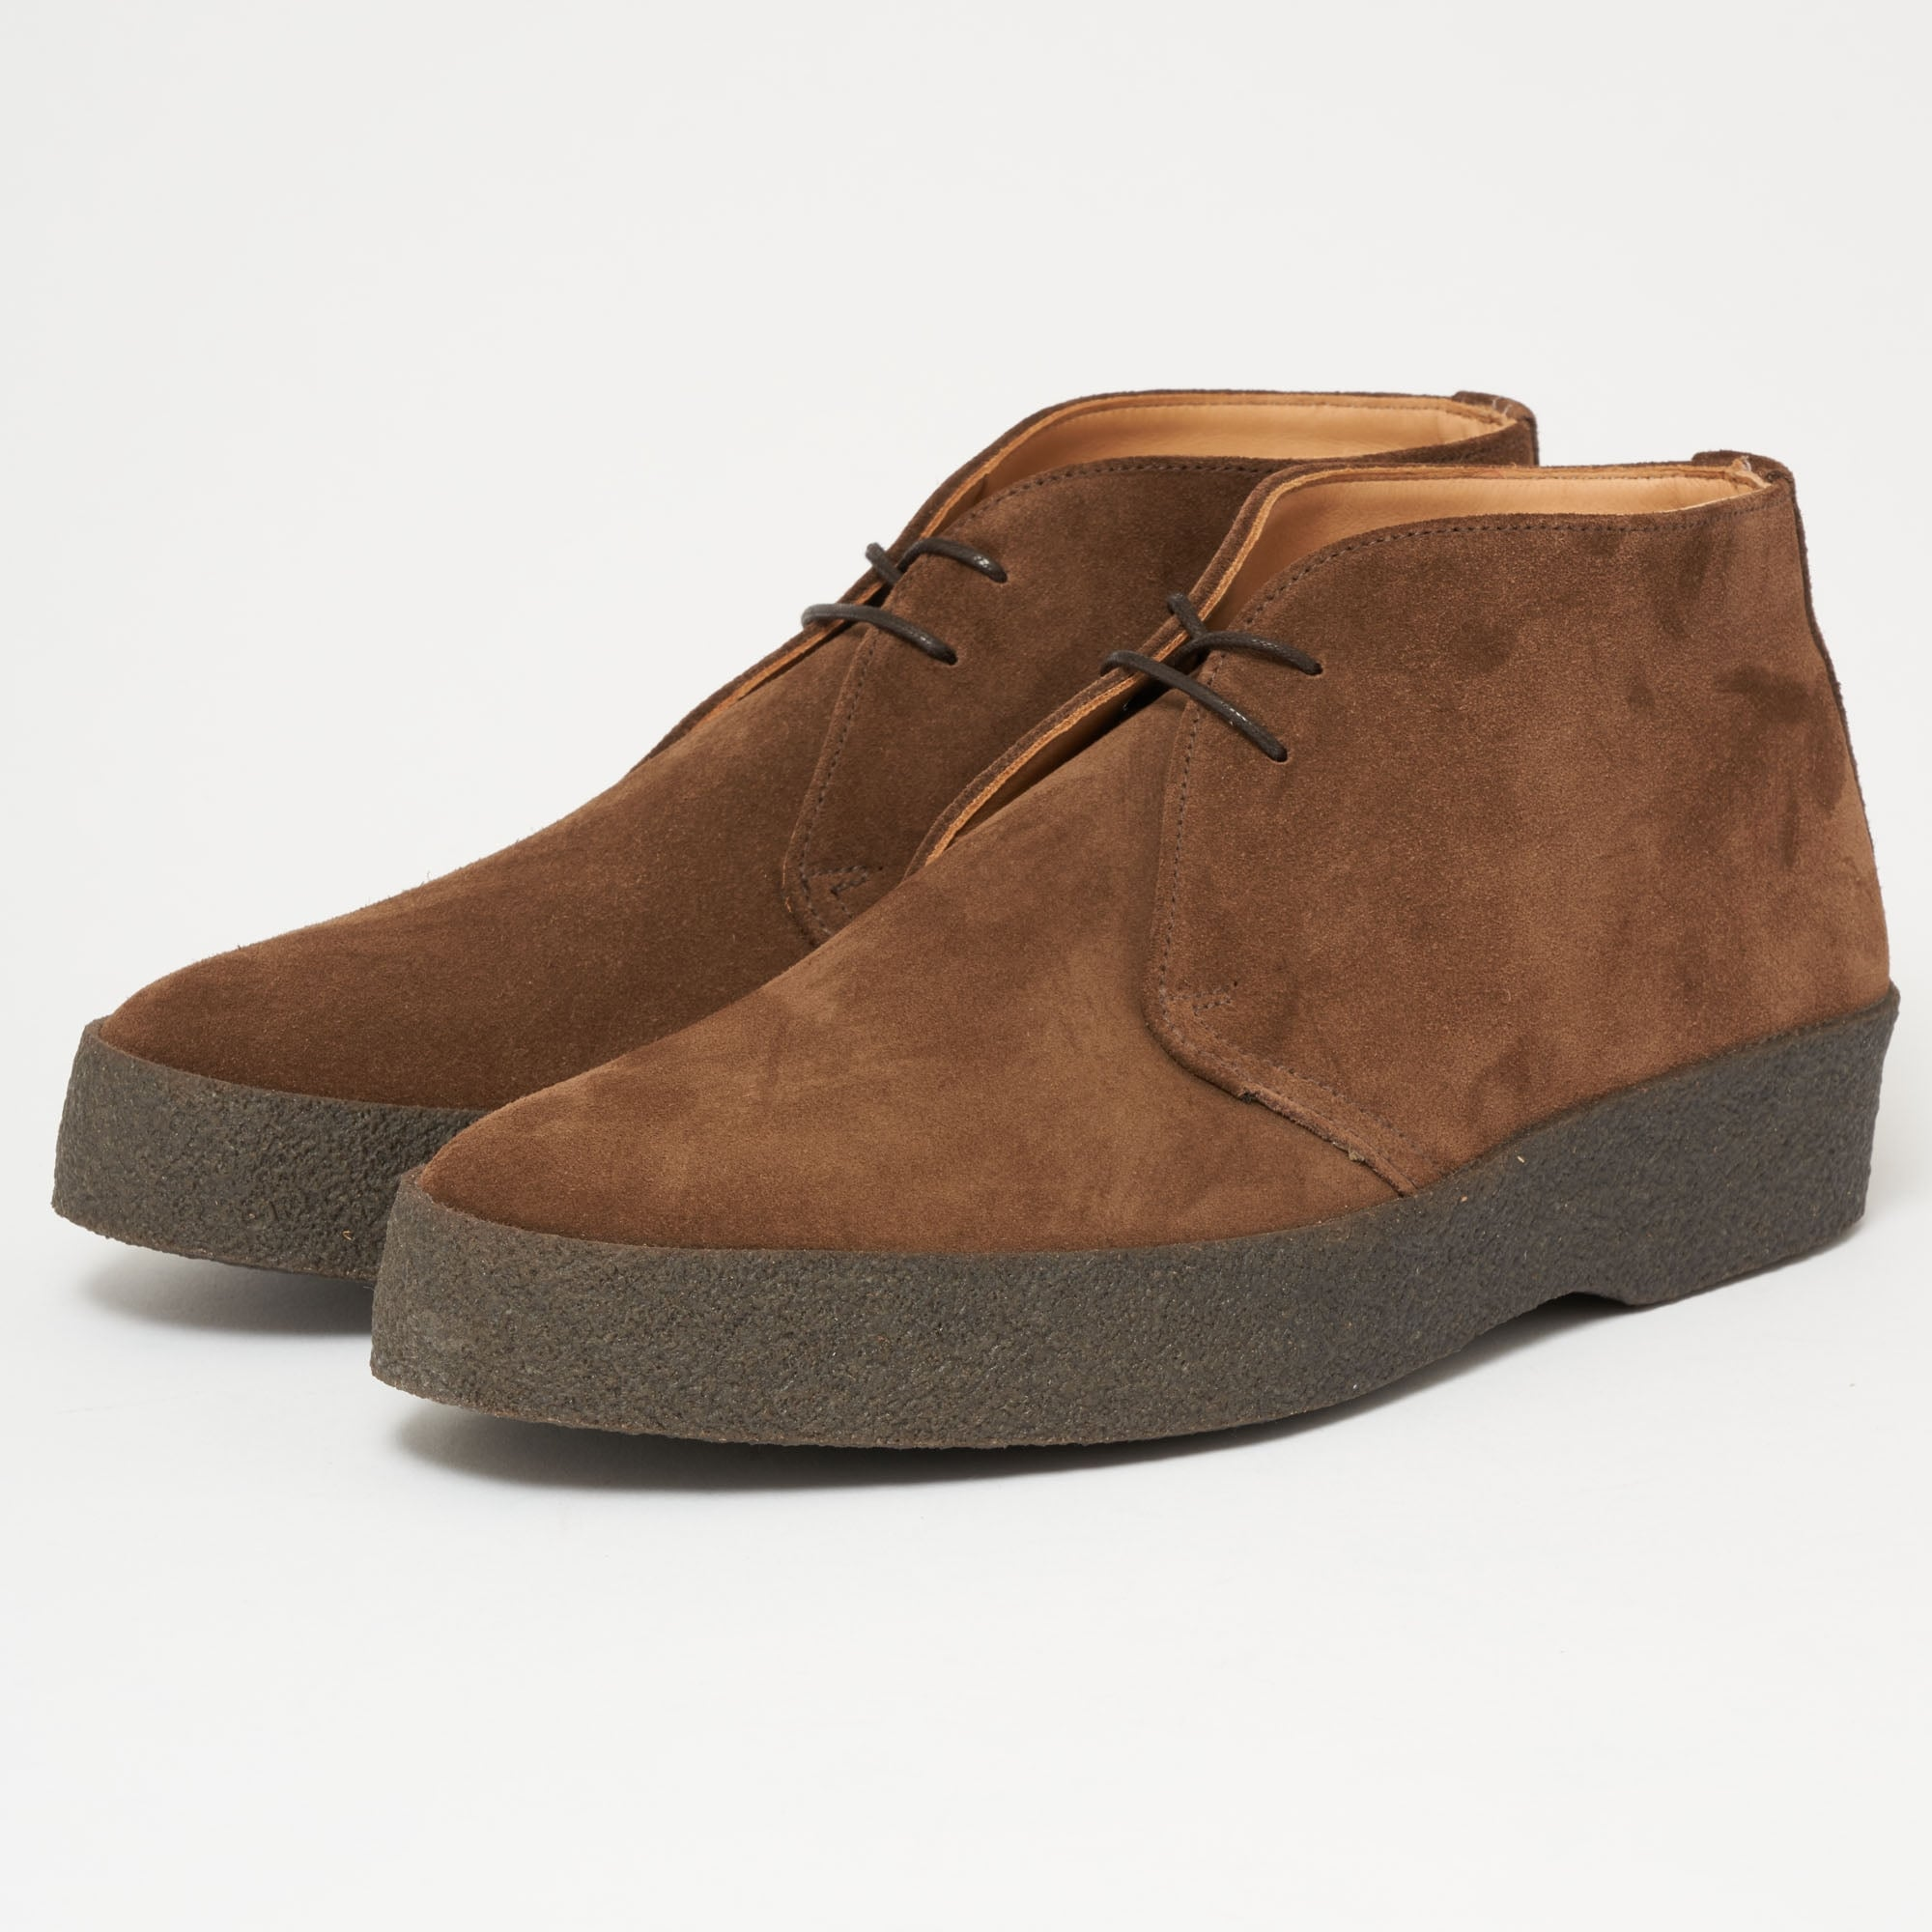 Lux London >> Sanders & Sanders Shoes | Snuff Chukka Boot | Mens Boots